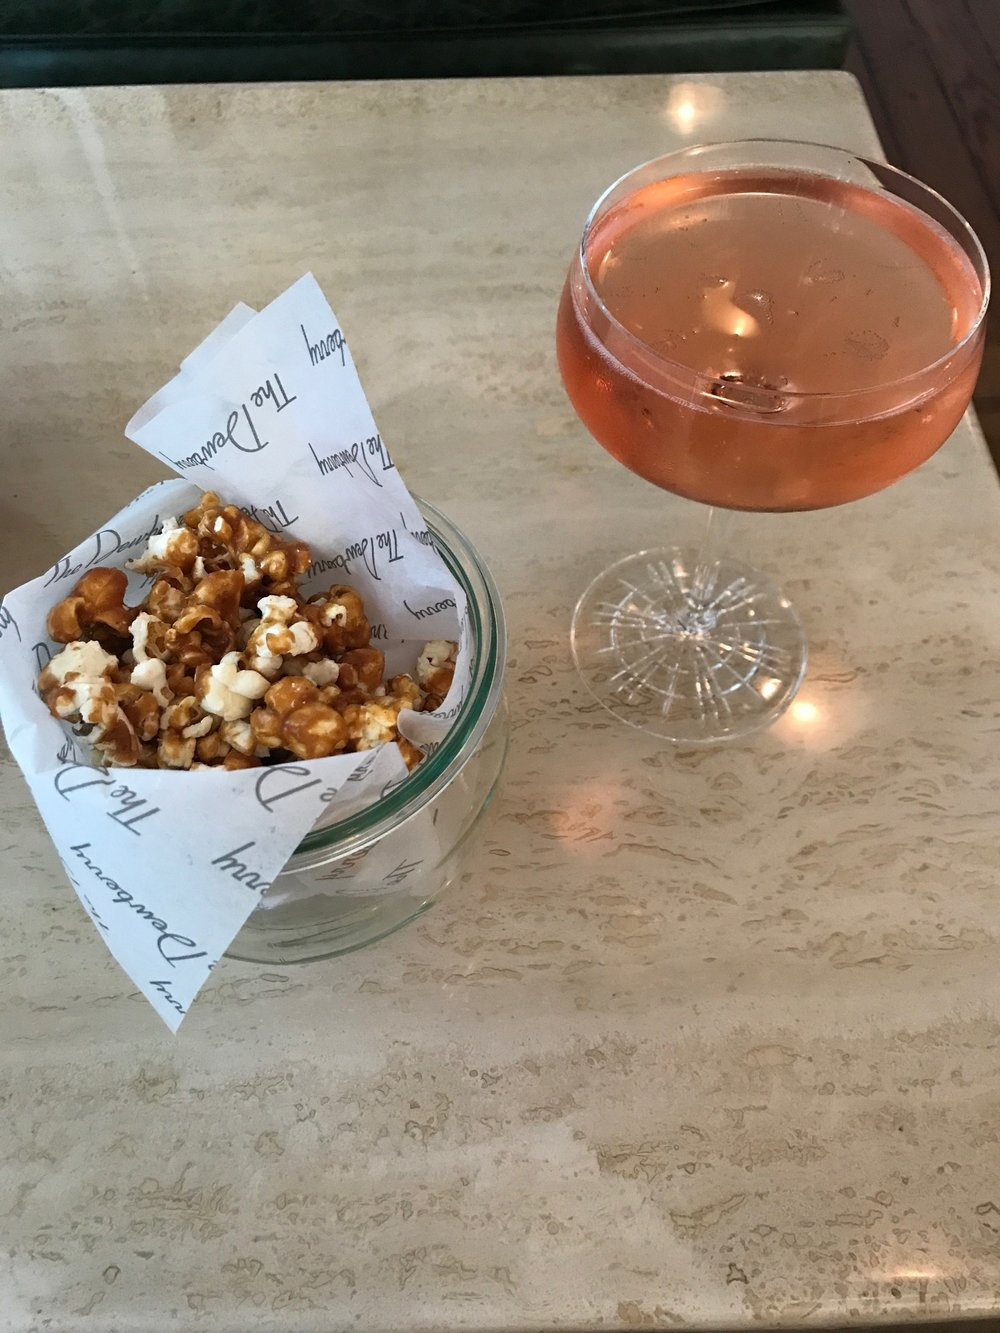 Cocktails and the famous popcorn.